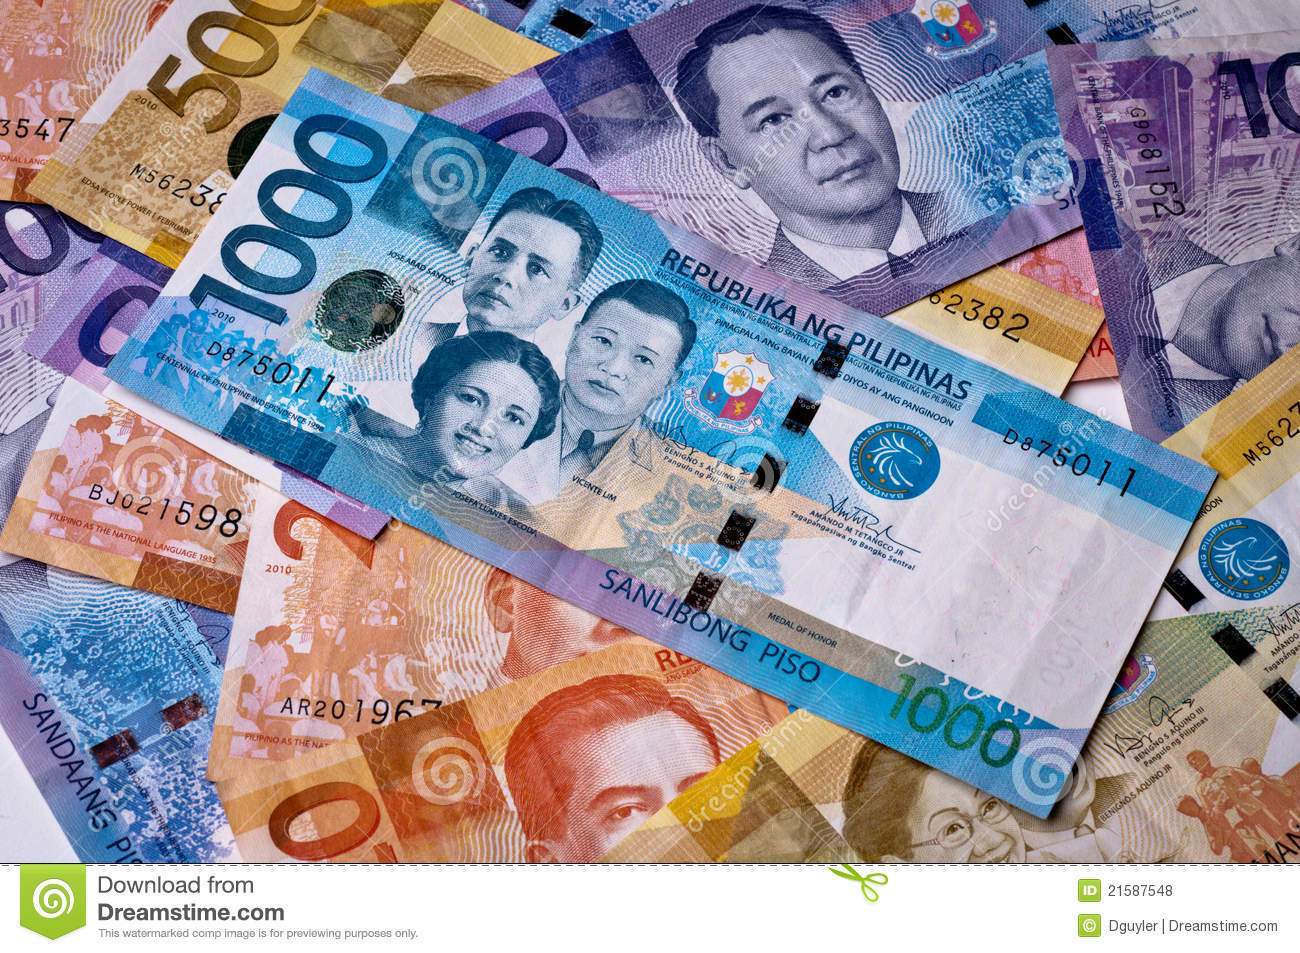 How to trade forex philippines